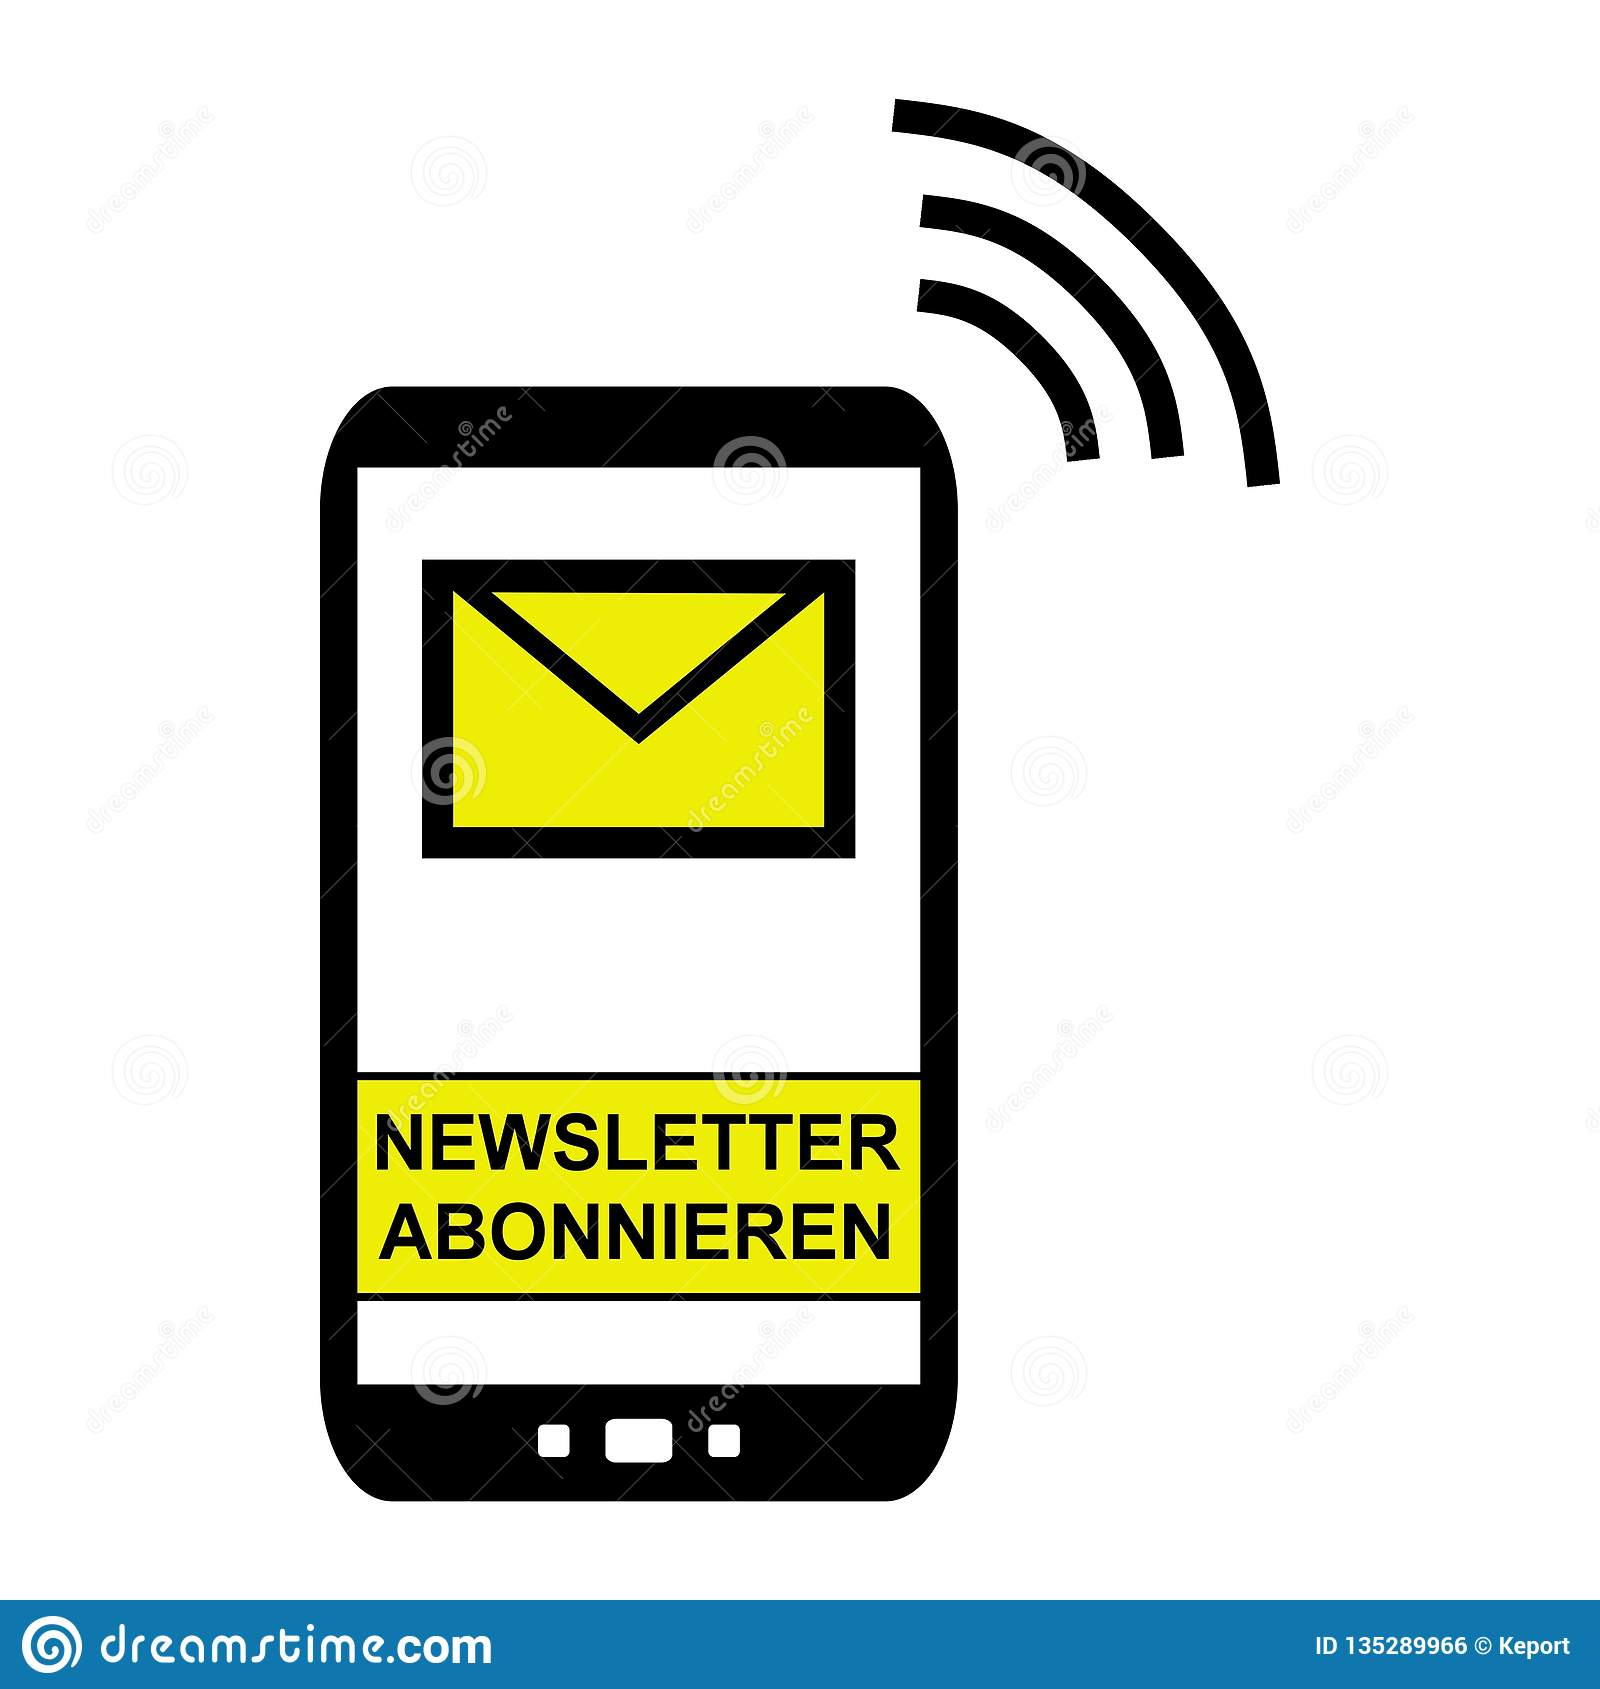 Mobile Phone - Subscribe to Newsletter german